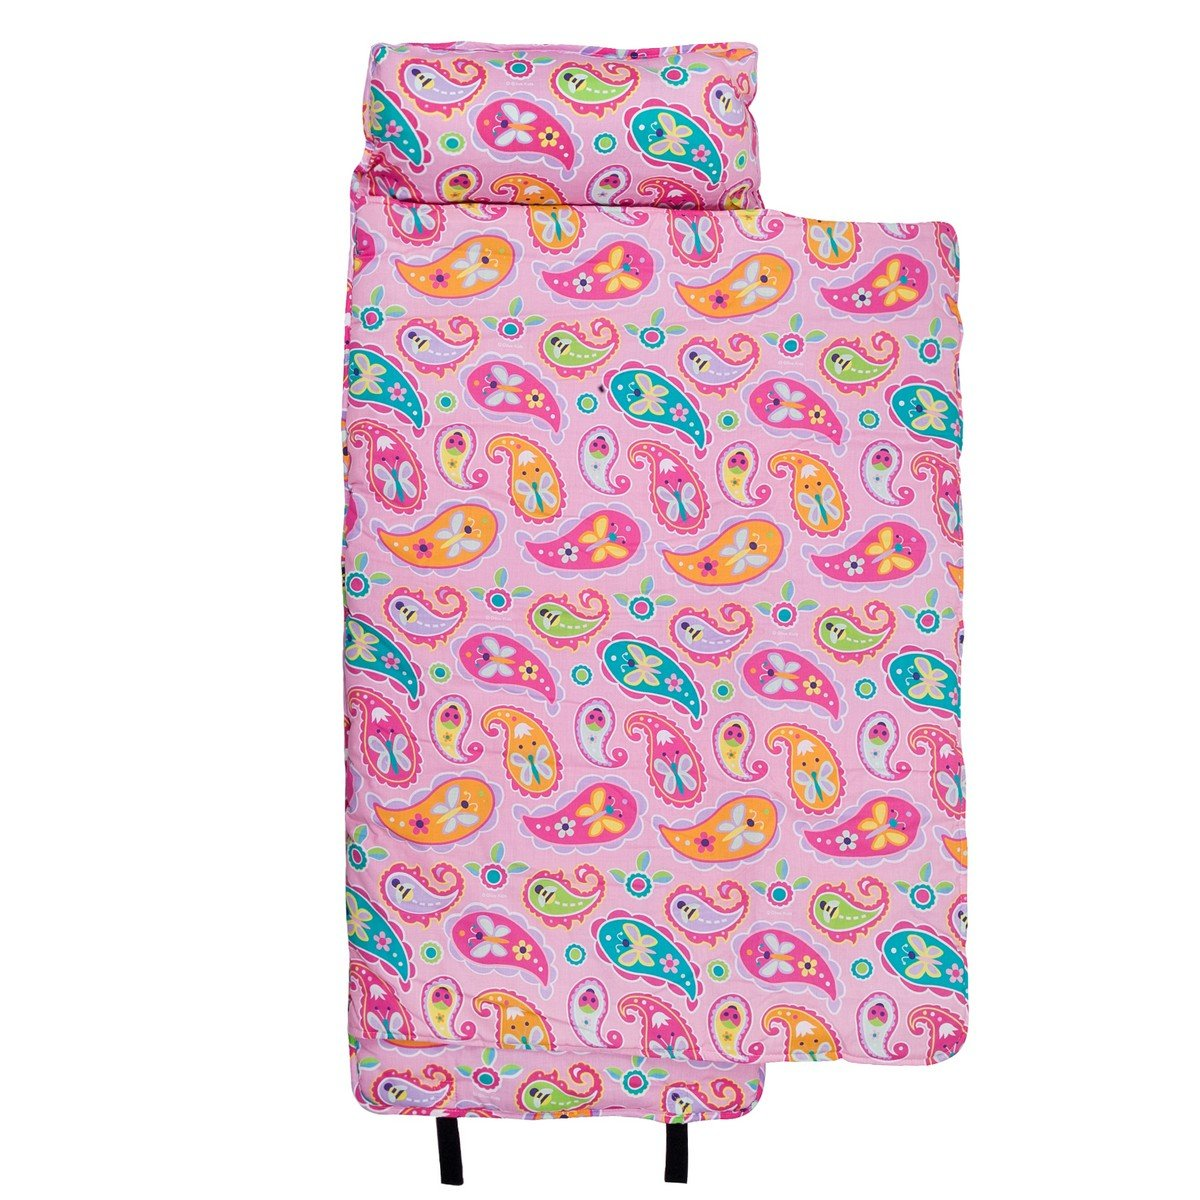 Paisley Dreams Nap Mat